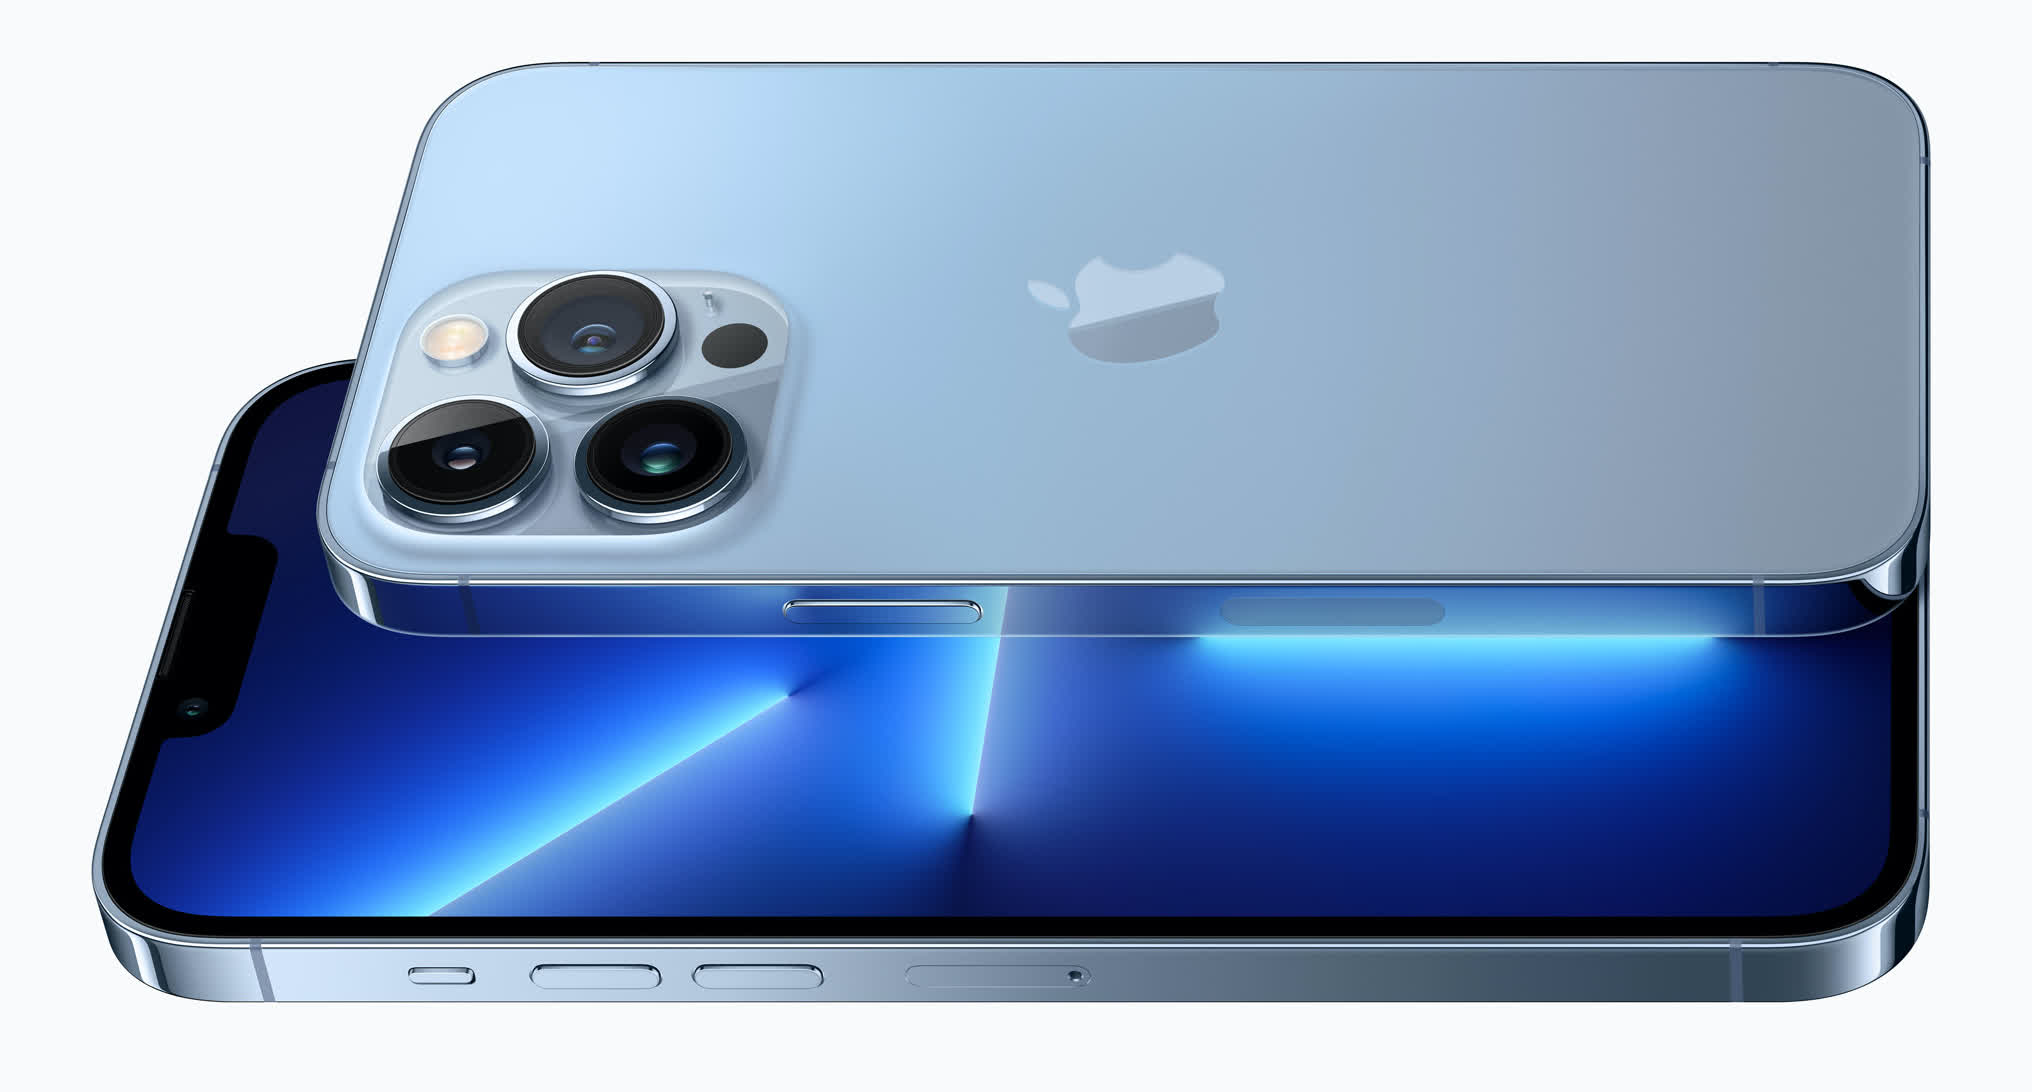 Kuo: iPhone 14 Pro won't have a notch, foldable iPhone pushed to 2024